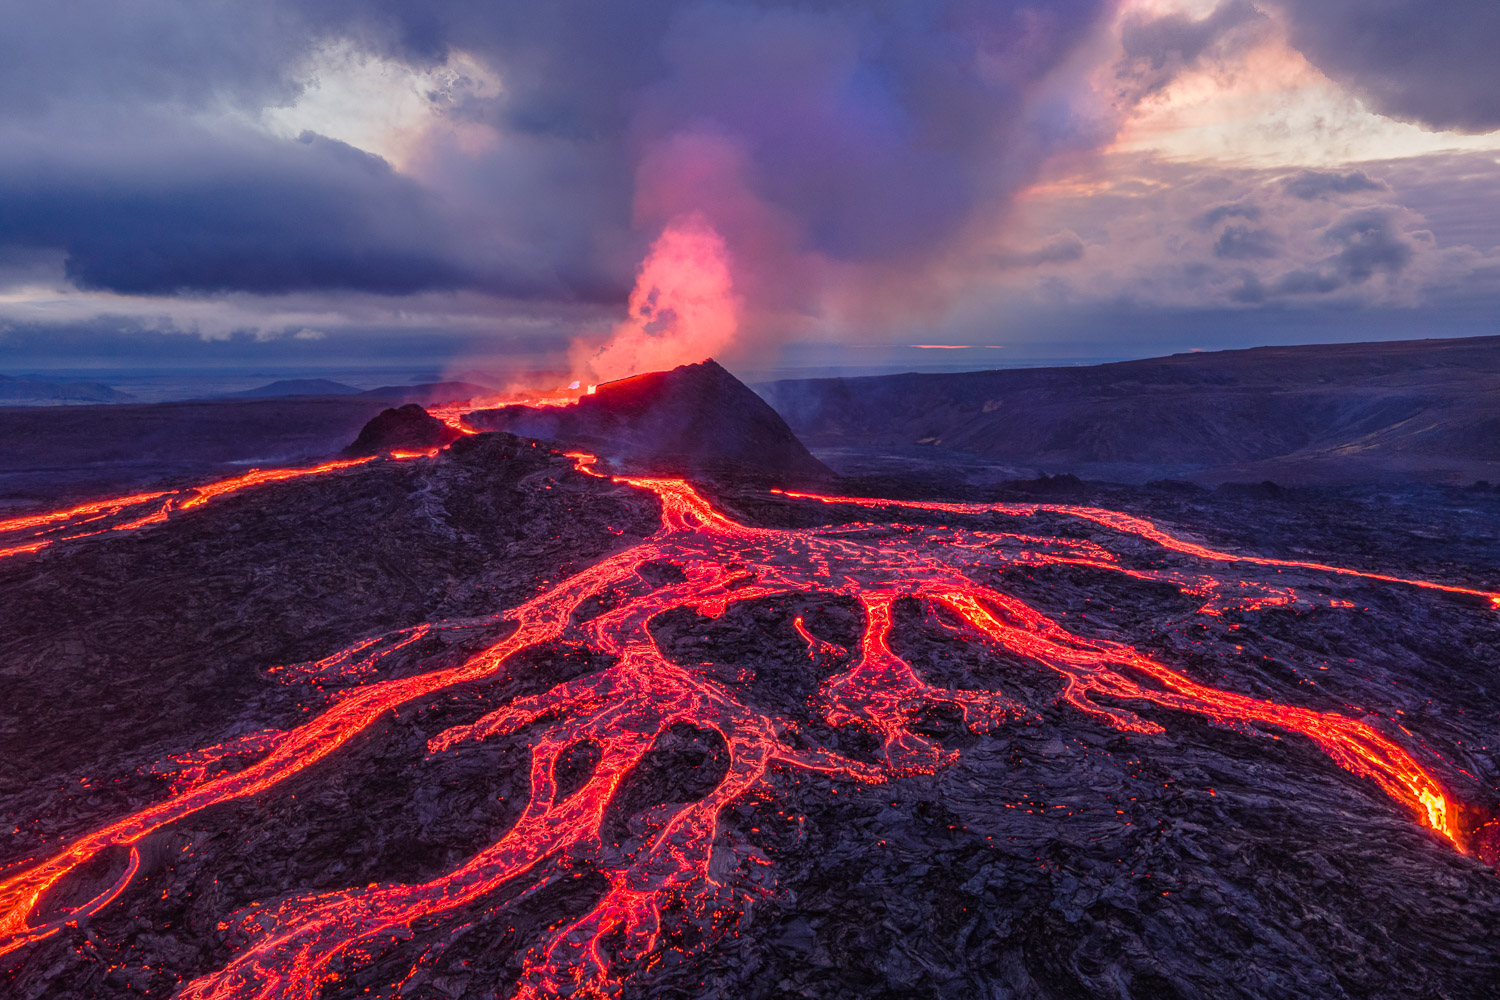 Fagradalsfjall volcano on the Reykjanes Peninsula in Iceland erupting with rivers of molten rock.